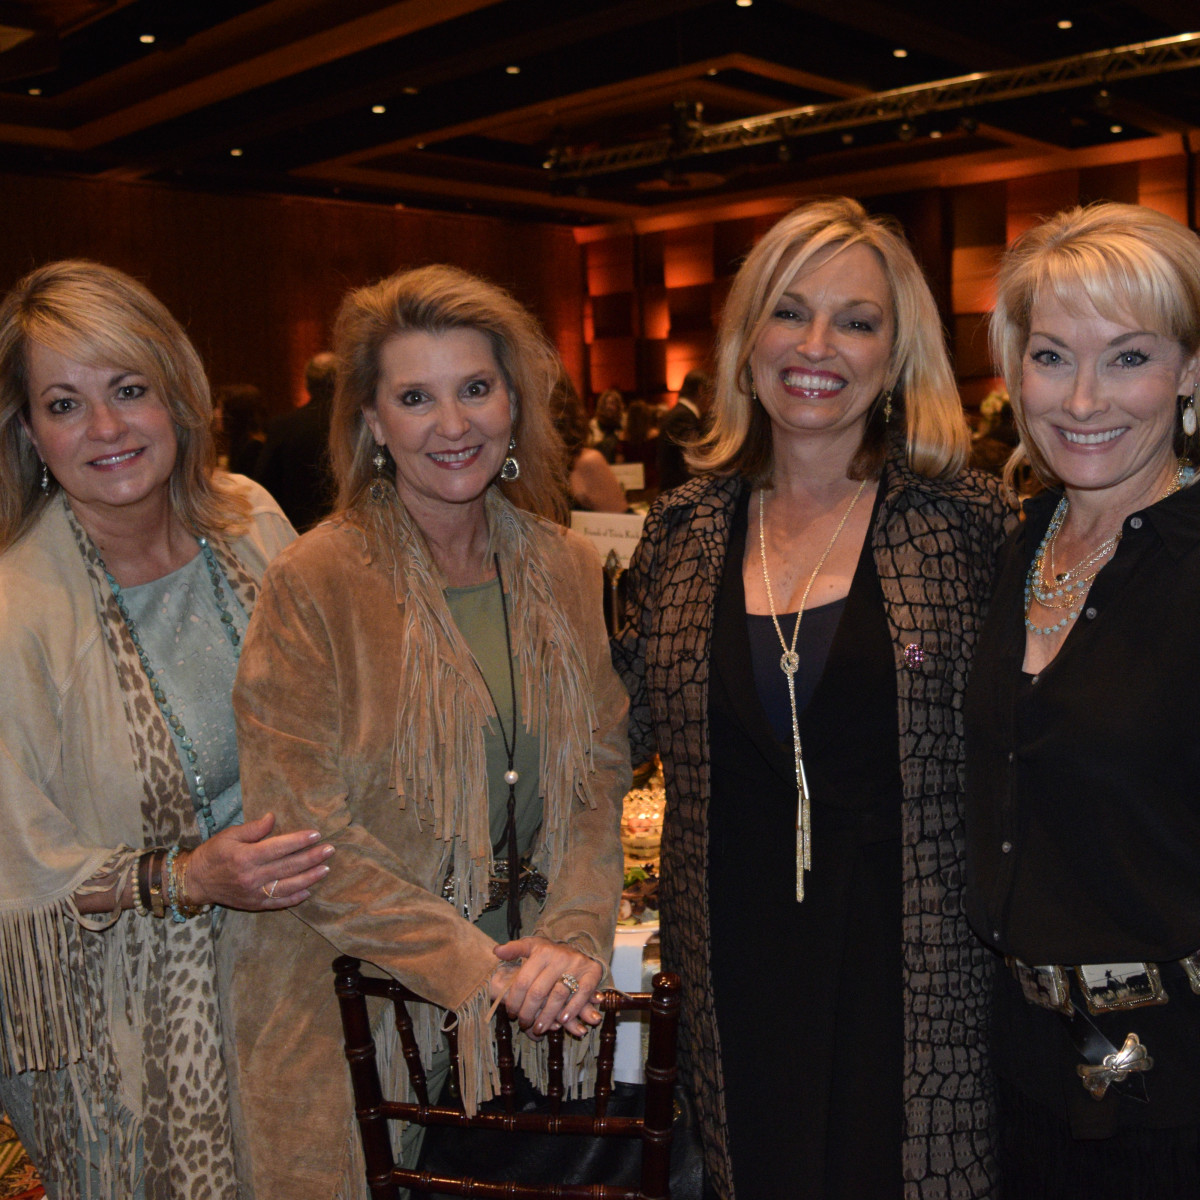 Trailblazer Awards, Feb. 2016, Crystal Northcutt, Lynn Kiesewetter, Debby Young, Arlene Hinsley